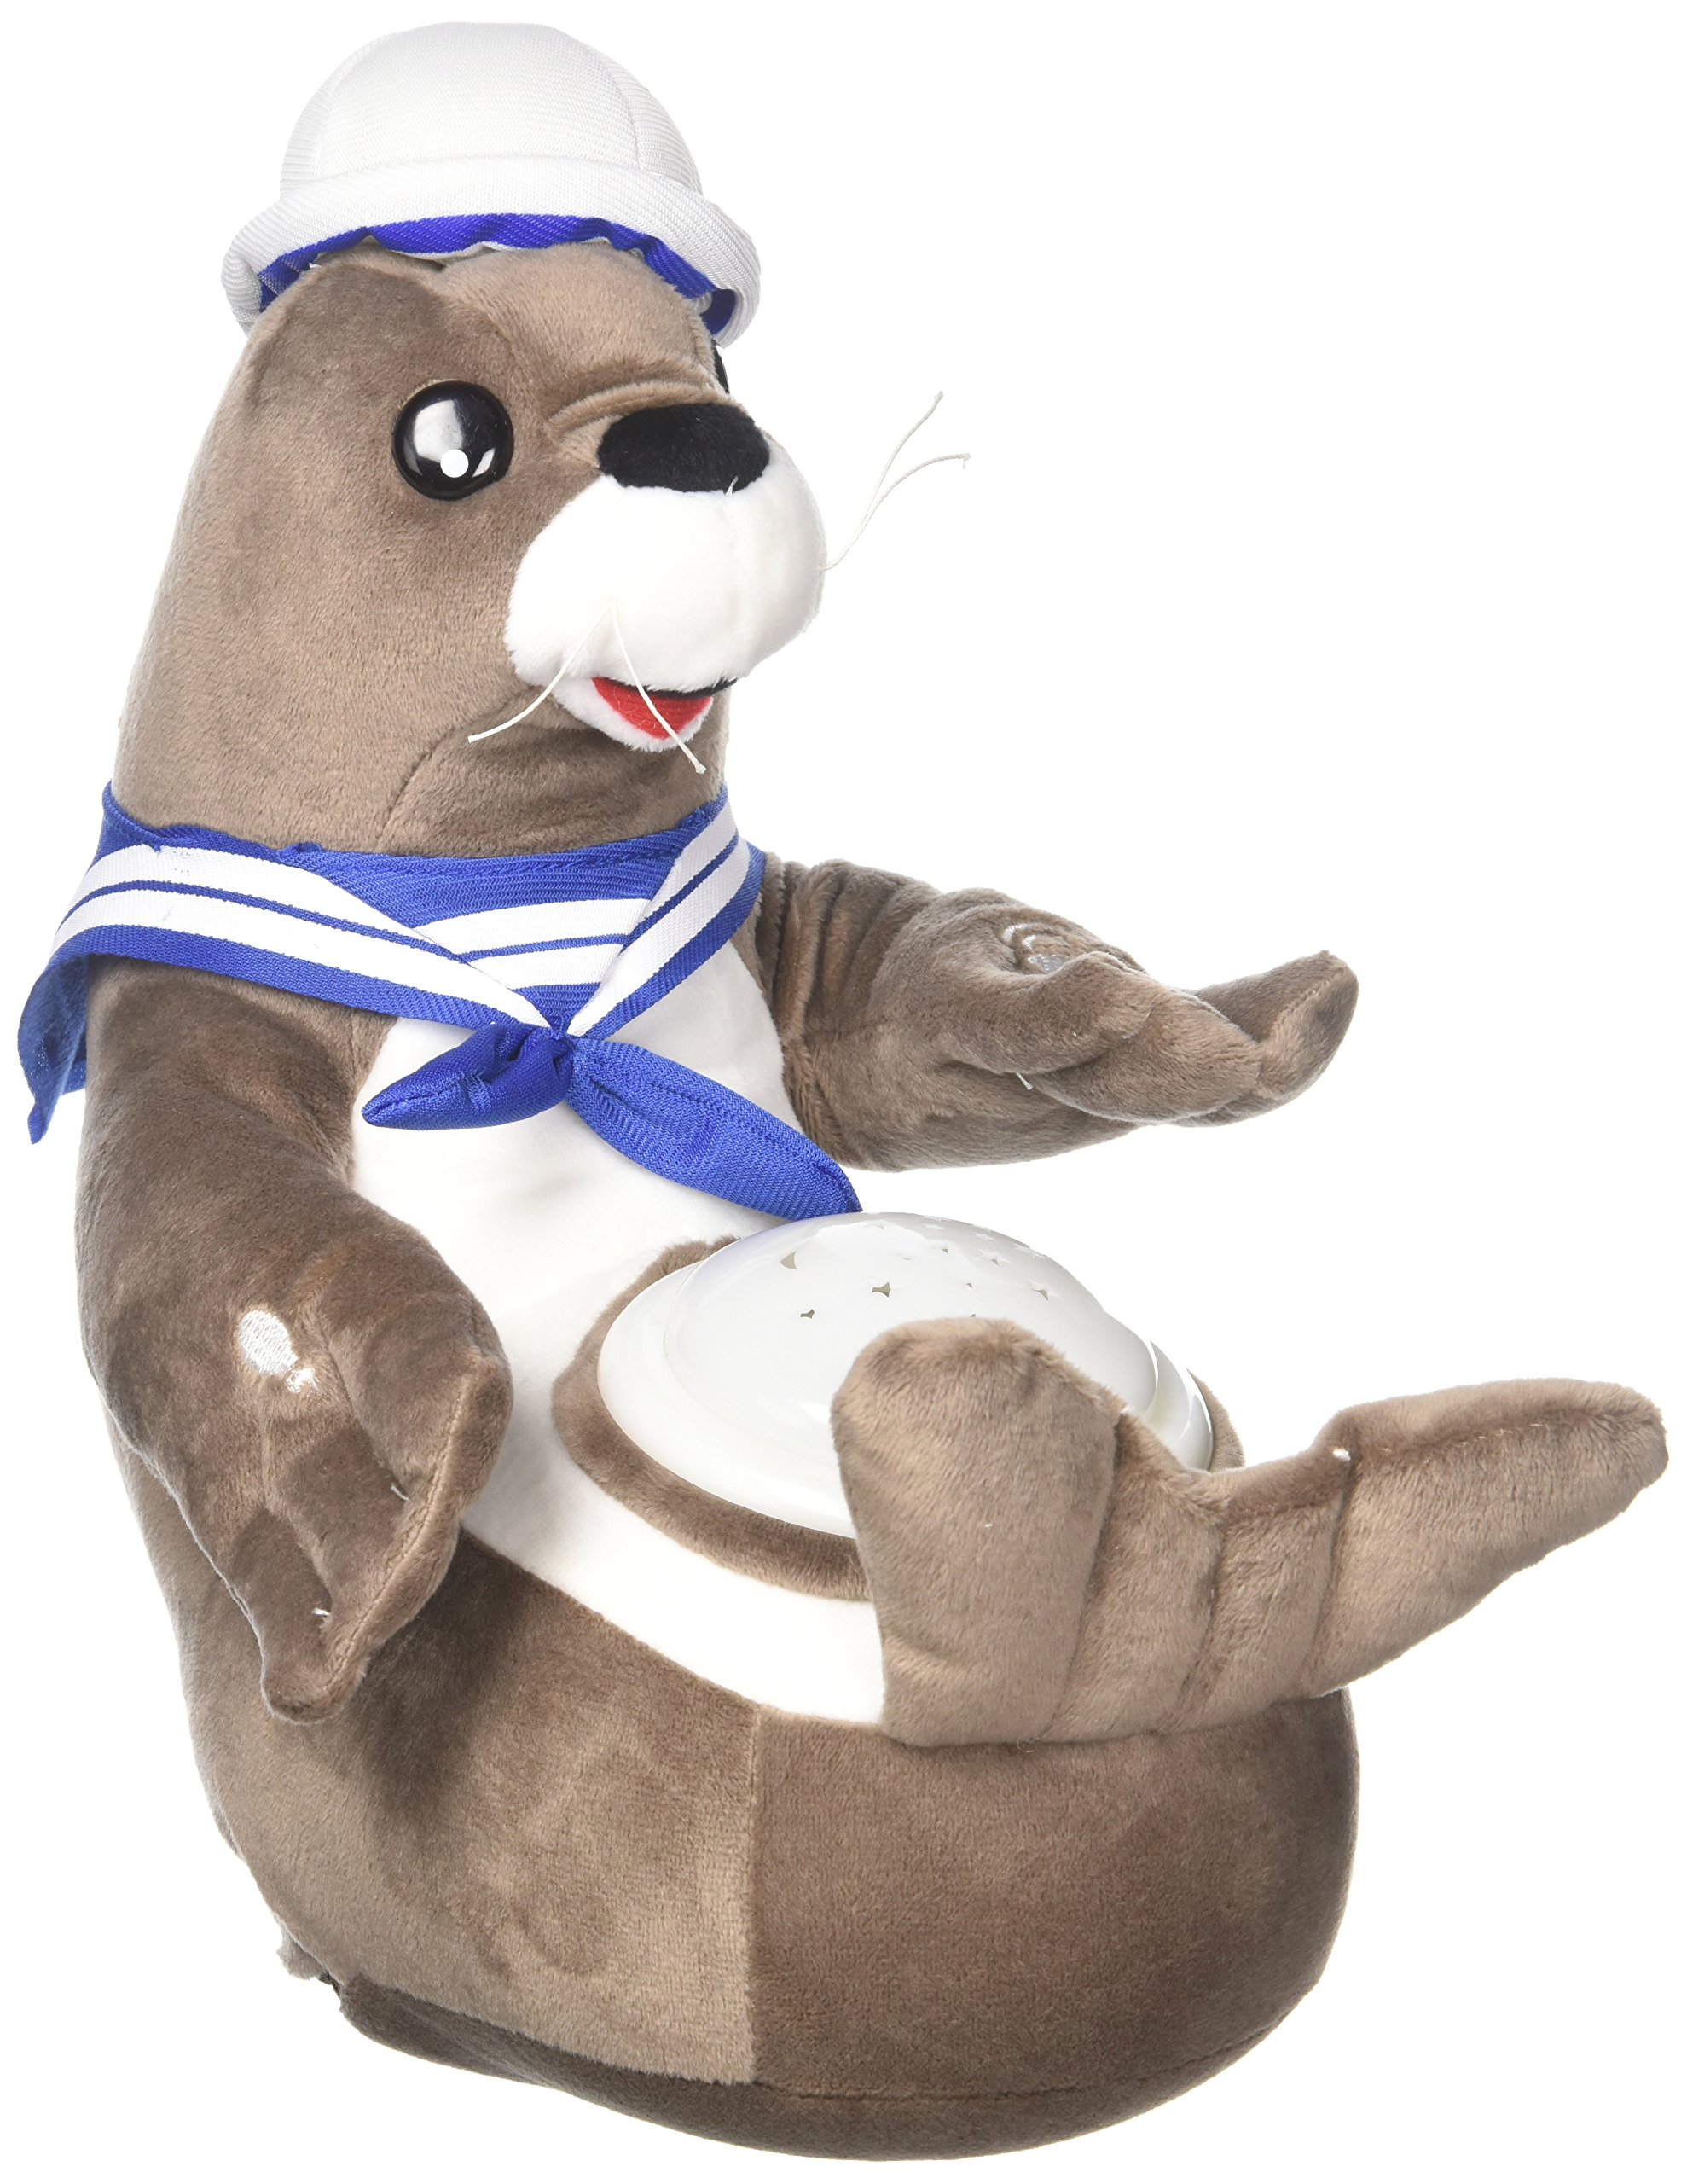 Sally Seal Nightlight Soother with Favorite Lullabies, Nature Sounds and Projecting Stars & Moon Light by Dimple